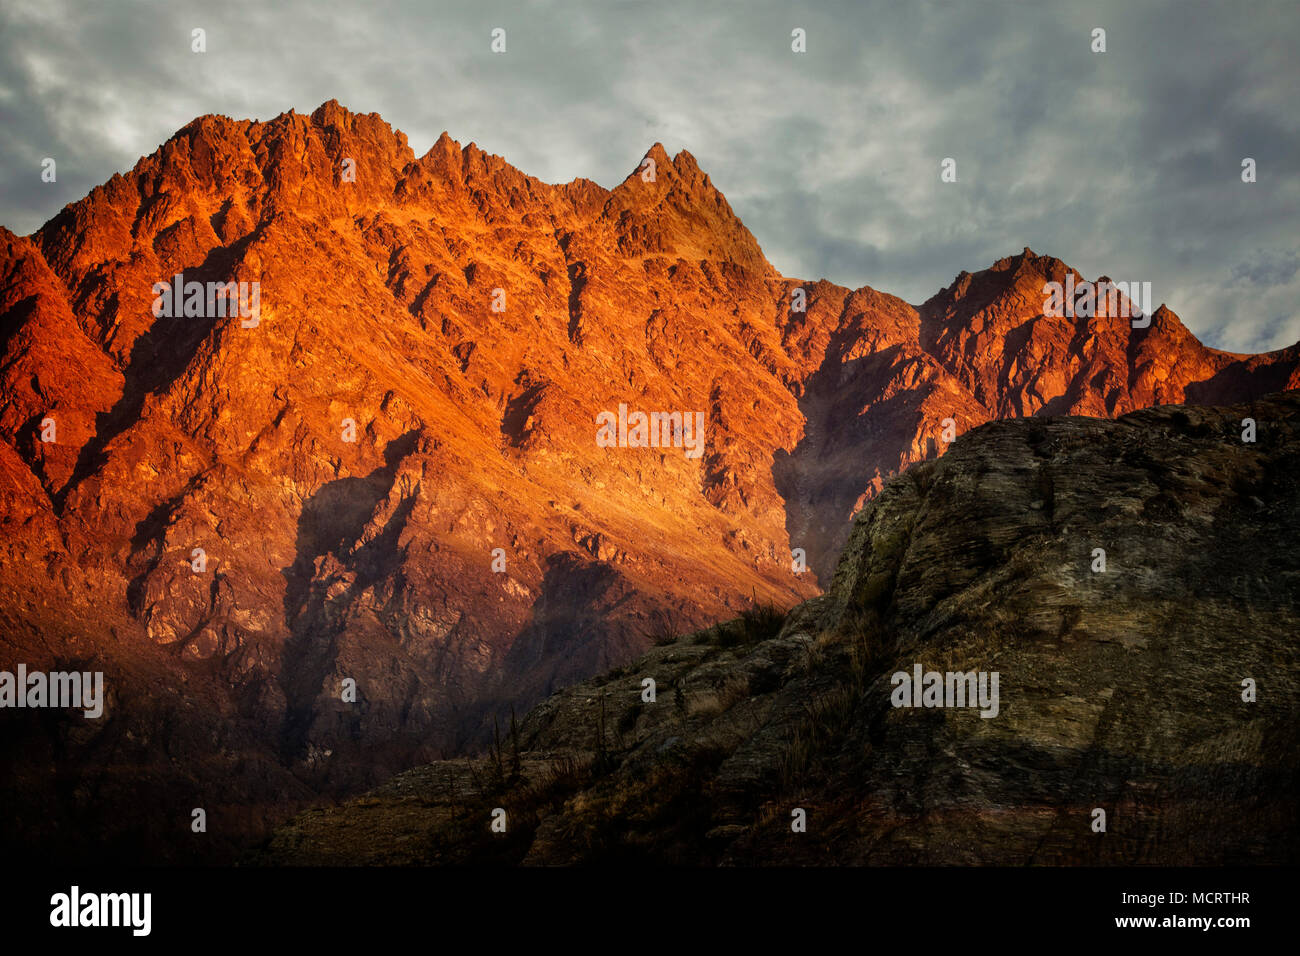 Sunset on the Remarkable mountain range near Queenstown, South Island, New Zealand. - Stock Image